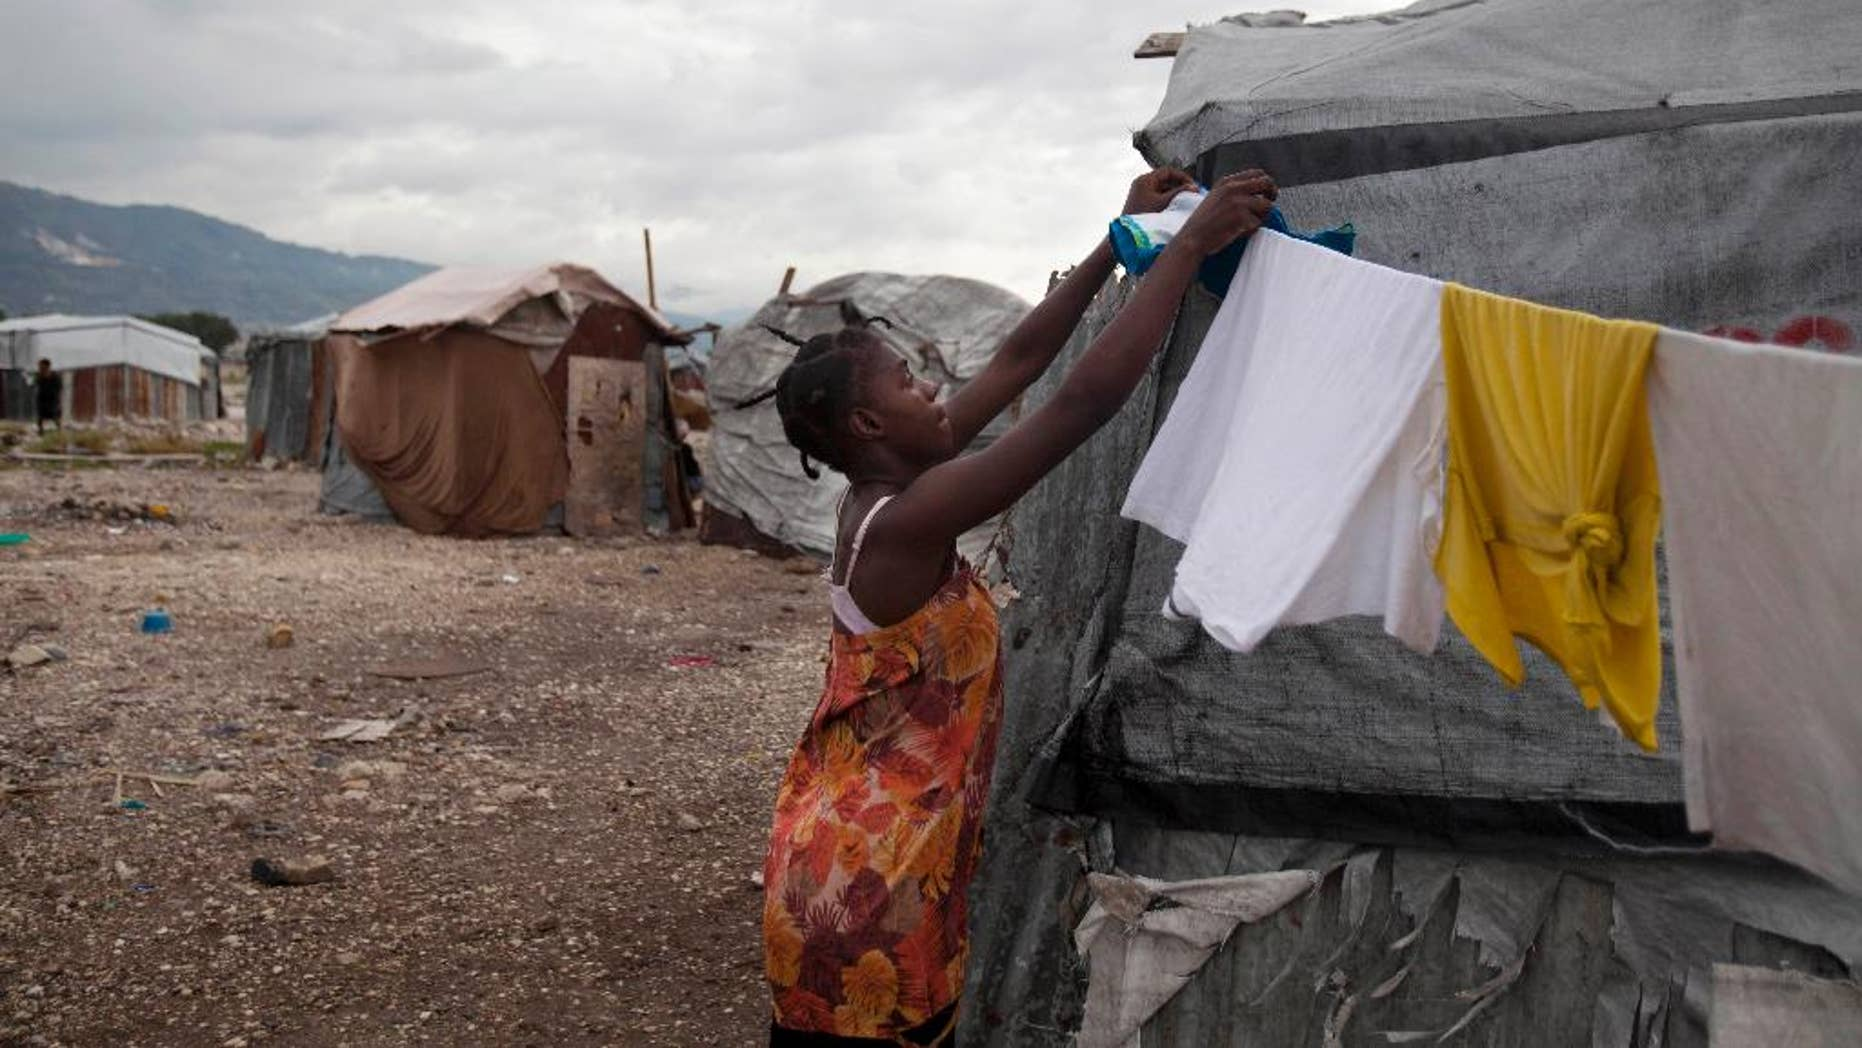 FILE - In this July 10, 2013 file photo, a woman fixes a clothes line next to her tent under cloudy skies caused by the nearby passing of Tropical Storm Chantal at the Jean-Marie Vincent camp for people displaced by the 2010 earthquake in Port-au-Prince, Haiti. A study released on Monday, April 7, 2014 finds that many of the camps are growing again, even as the overall population of quake refugees is falling. The study from the International Organization for Migration attributes the phenomenon mostly to people who have returned because they canít afford rents elsewhere. (AP Photo/Dieu Nalio Chery, File)